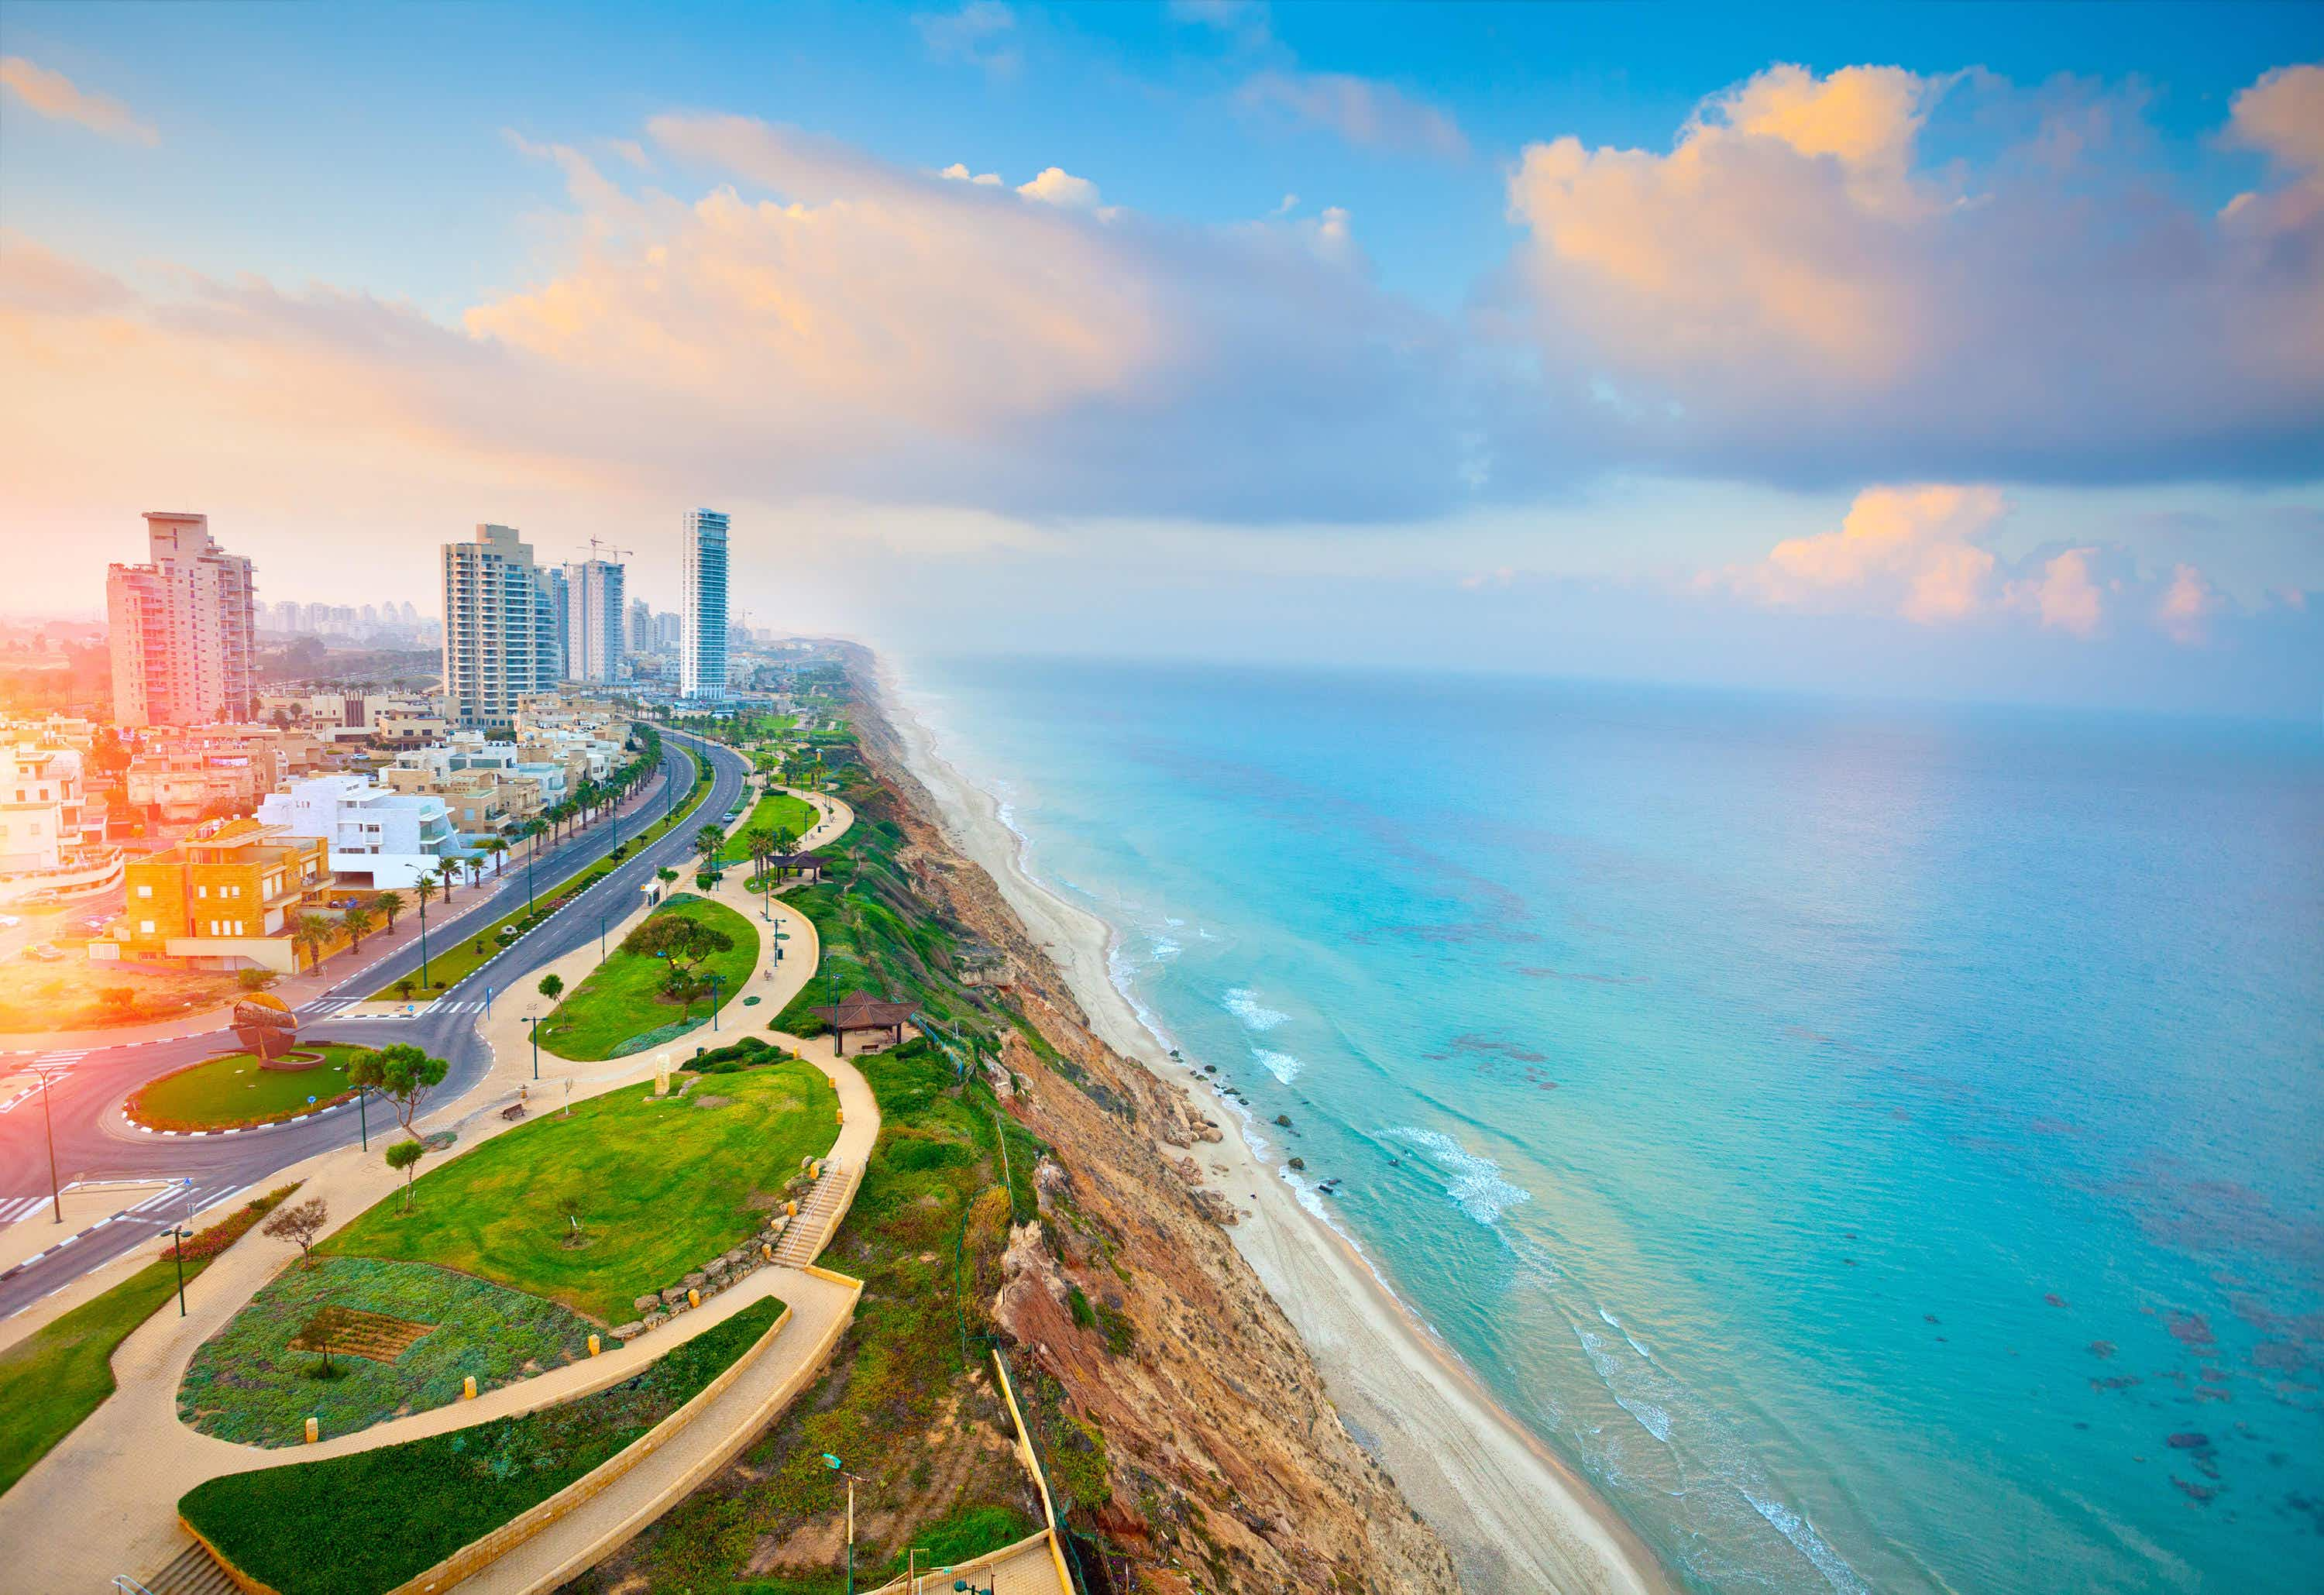 These tourist destinations are gaining popularity with US travellers